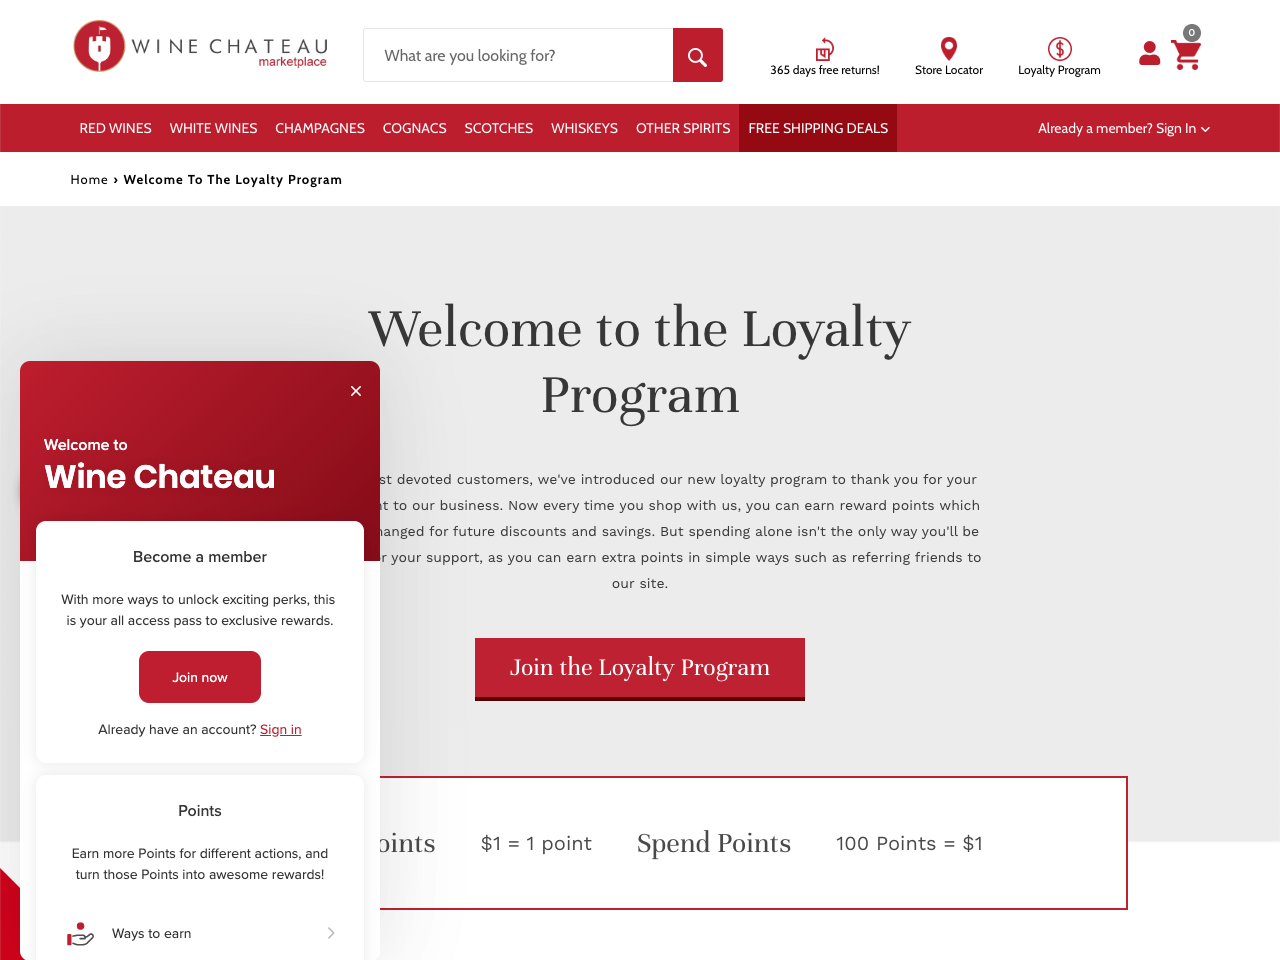 Wine Chateau showcases their loyalty program and ways to earn points